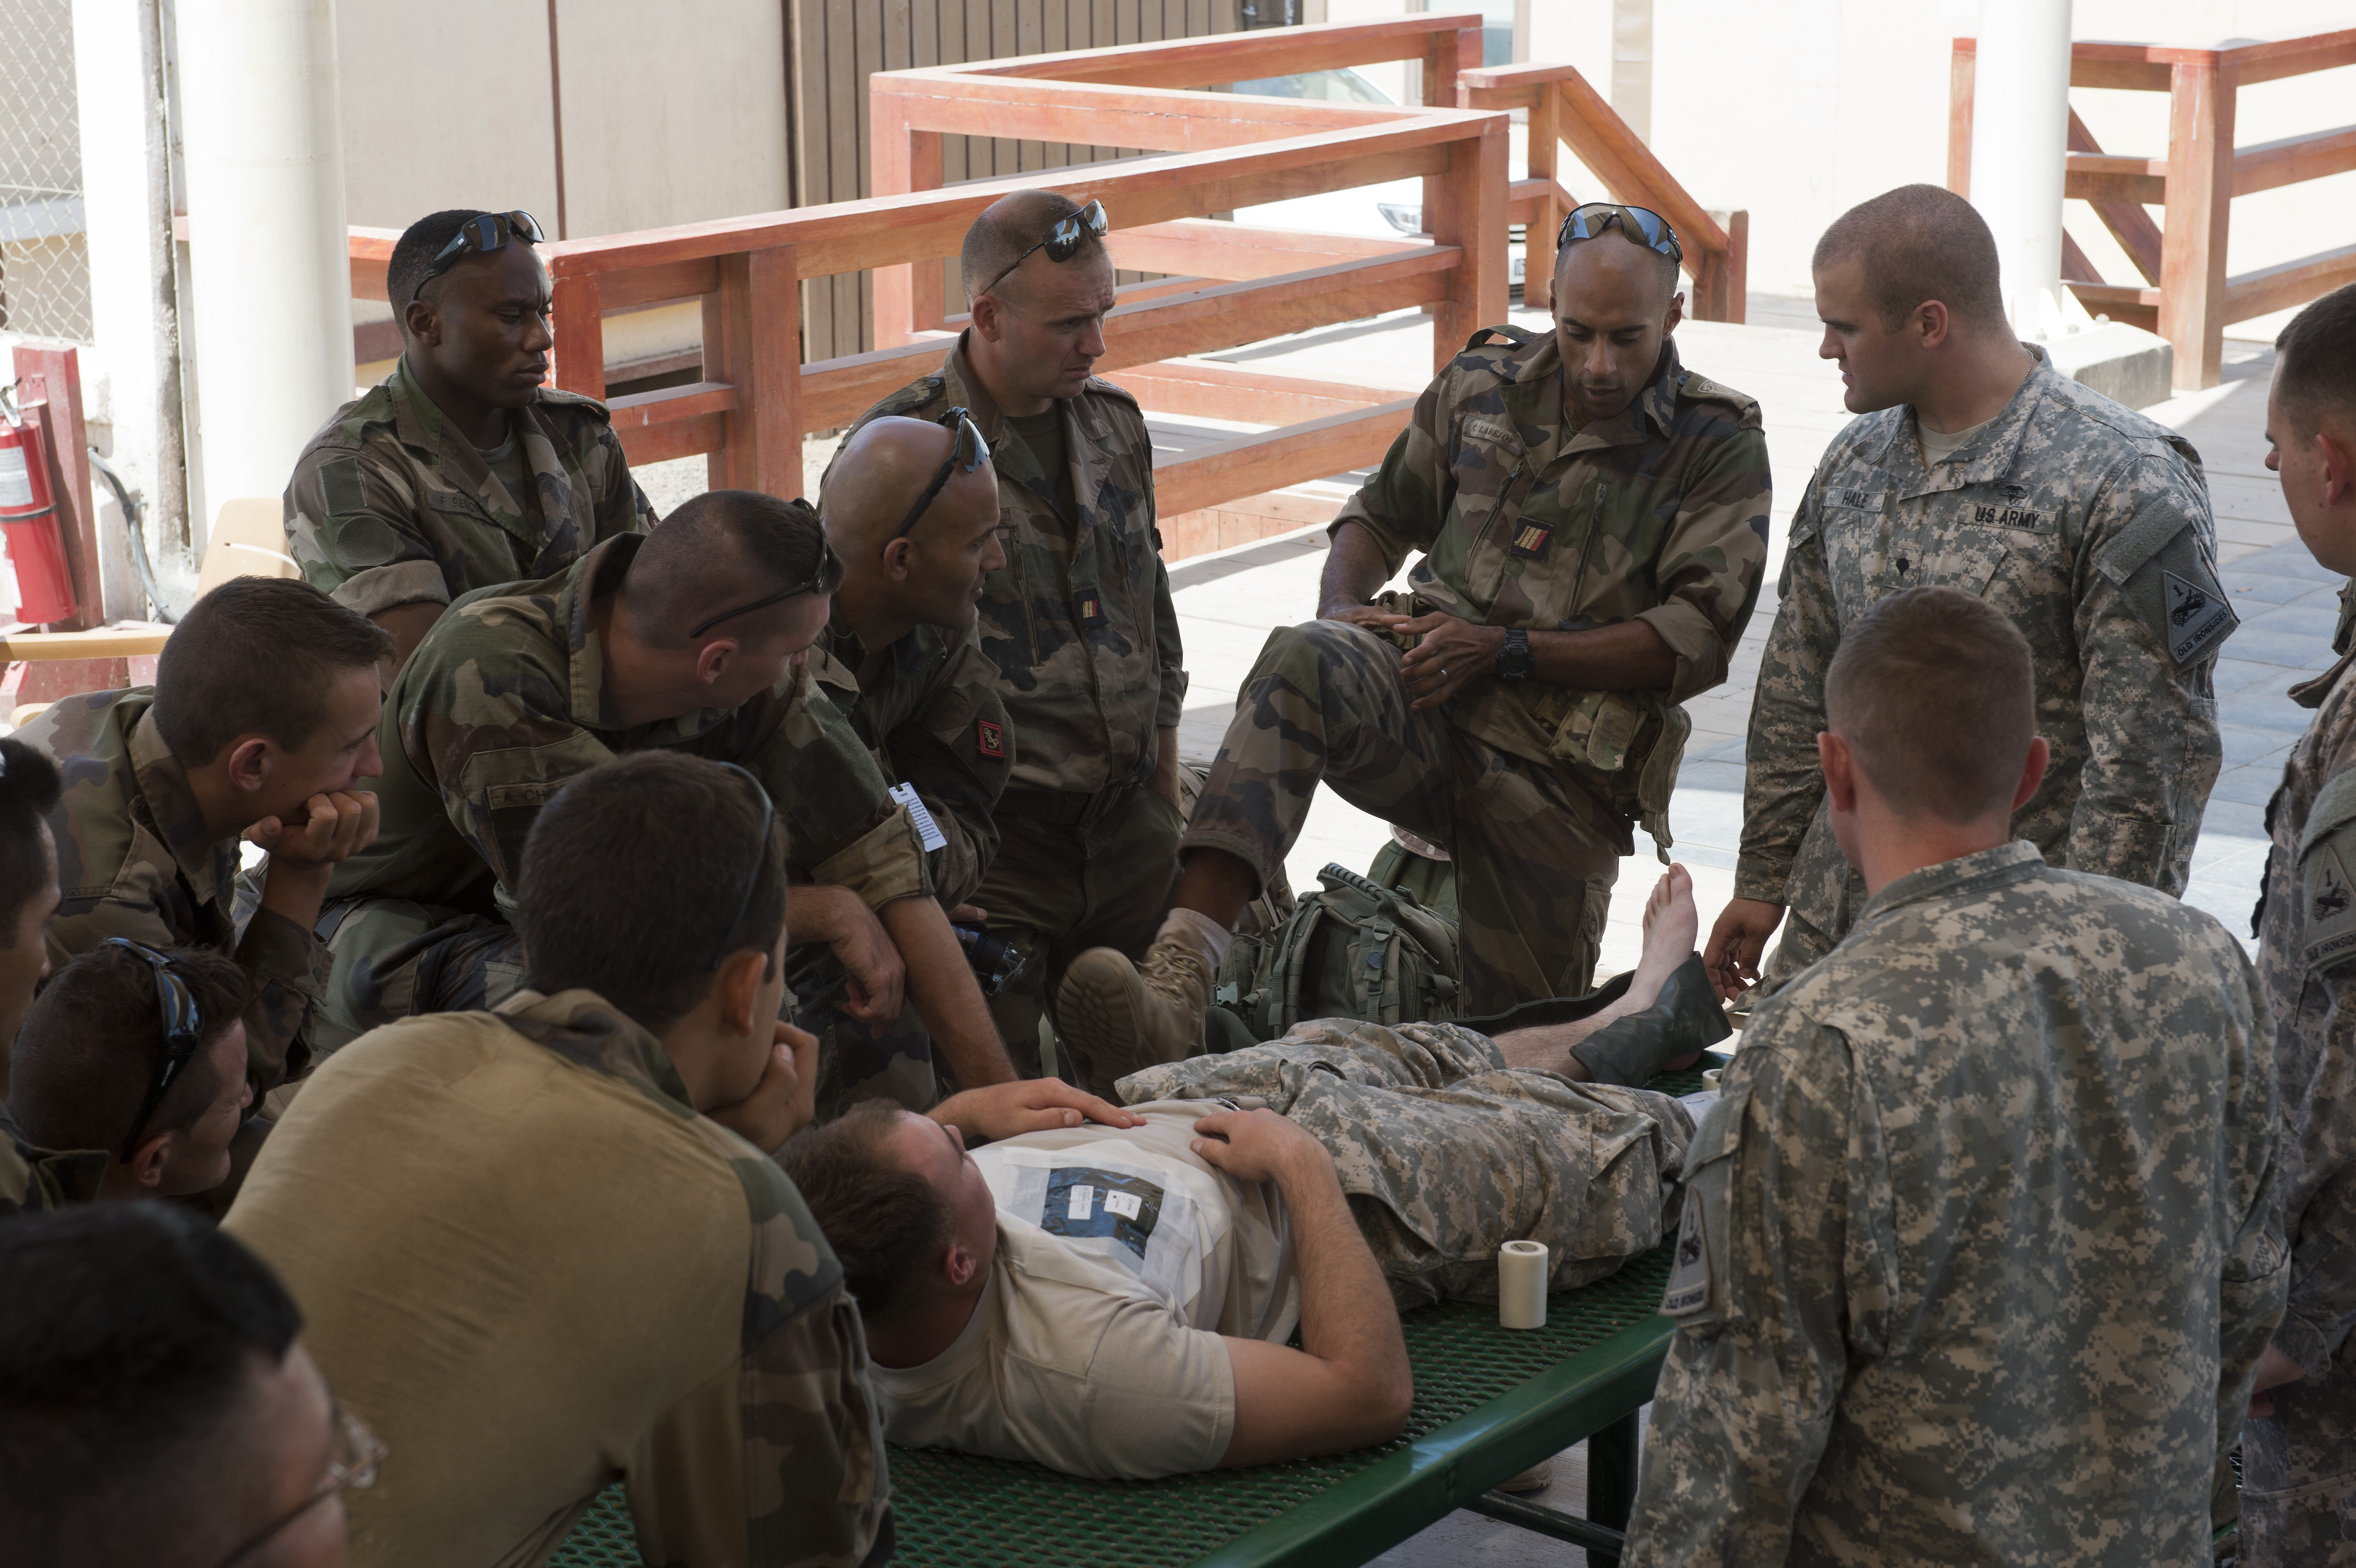 Members of the French 5th Combined Overseas Marines Battalion, compare best practices on splinting a leg under fire in preparation for the Expert Infantry Badge assessment on Camp Lemonnier, Djibouti, April 15, 2015. Tactical Combat Casualty Care is one of many skills soldiers are graded on during the EIB assessment course. (U.S. Air Force photo by Staff Sgt. Nathan Maysonet)